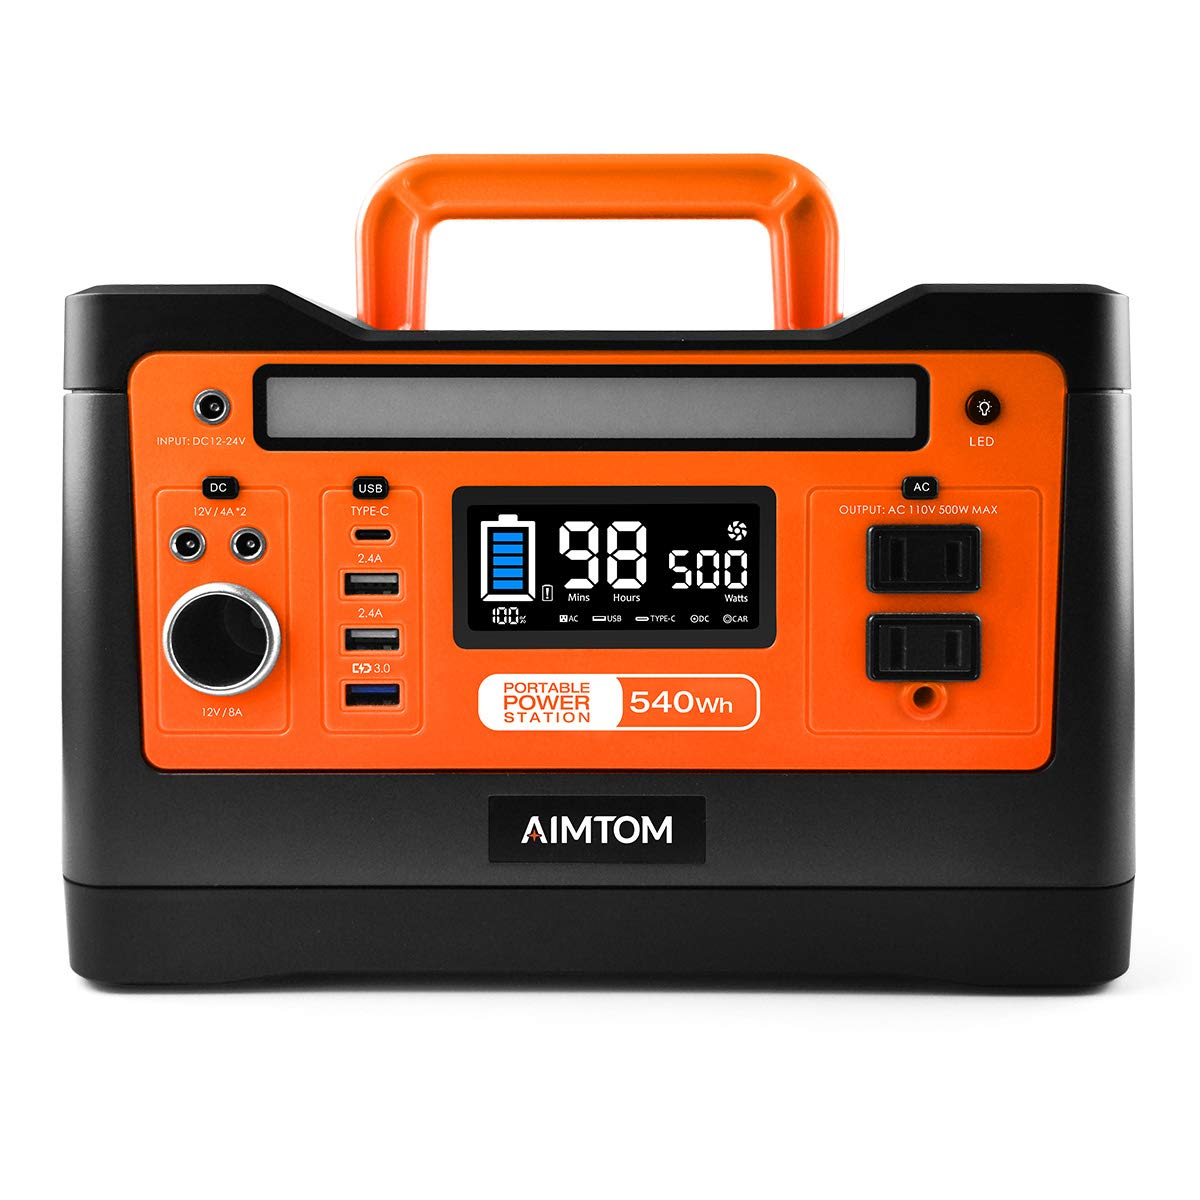 AIMTOM 540Wh Portable Power Station, Lithium Battery Pack with 110V 500W AC, 12V DC, USB, Carport, USB-C, Solar-Ready Generator Alternative Solar Panel Optional for Outdoor RV Camping Emergency